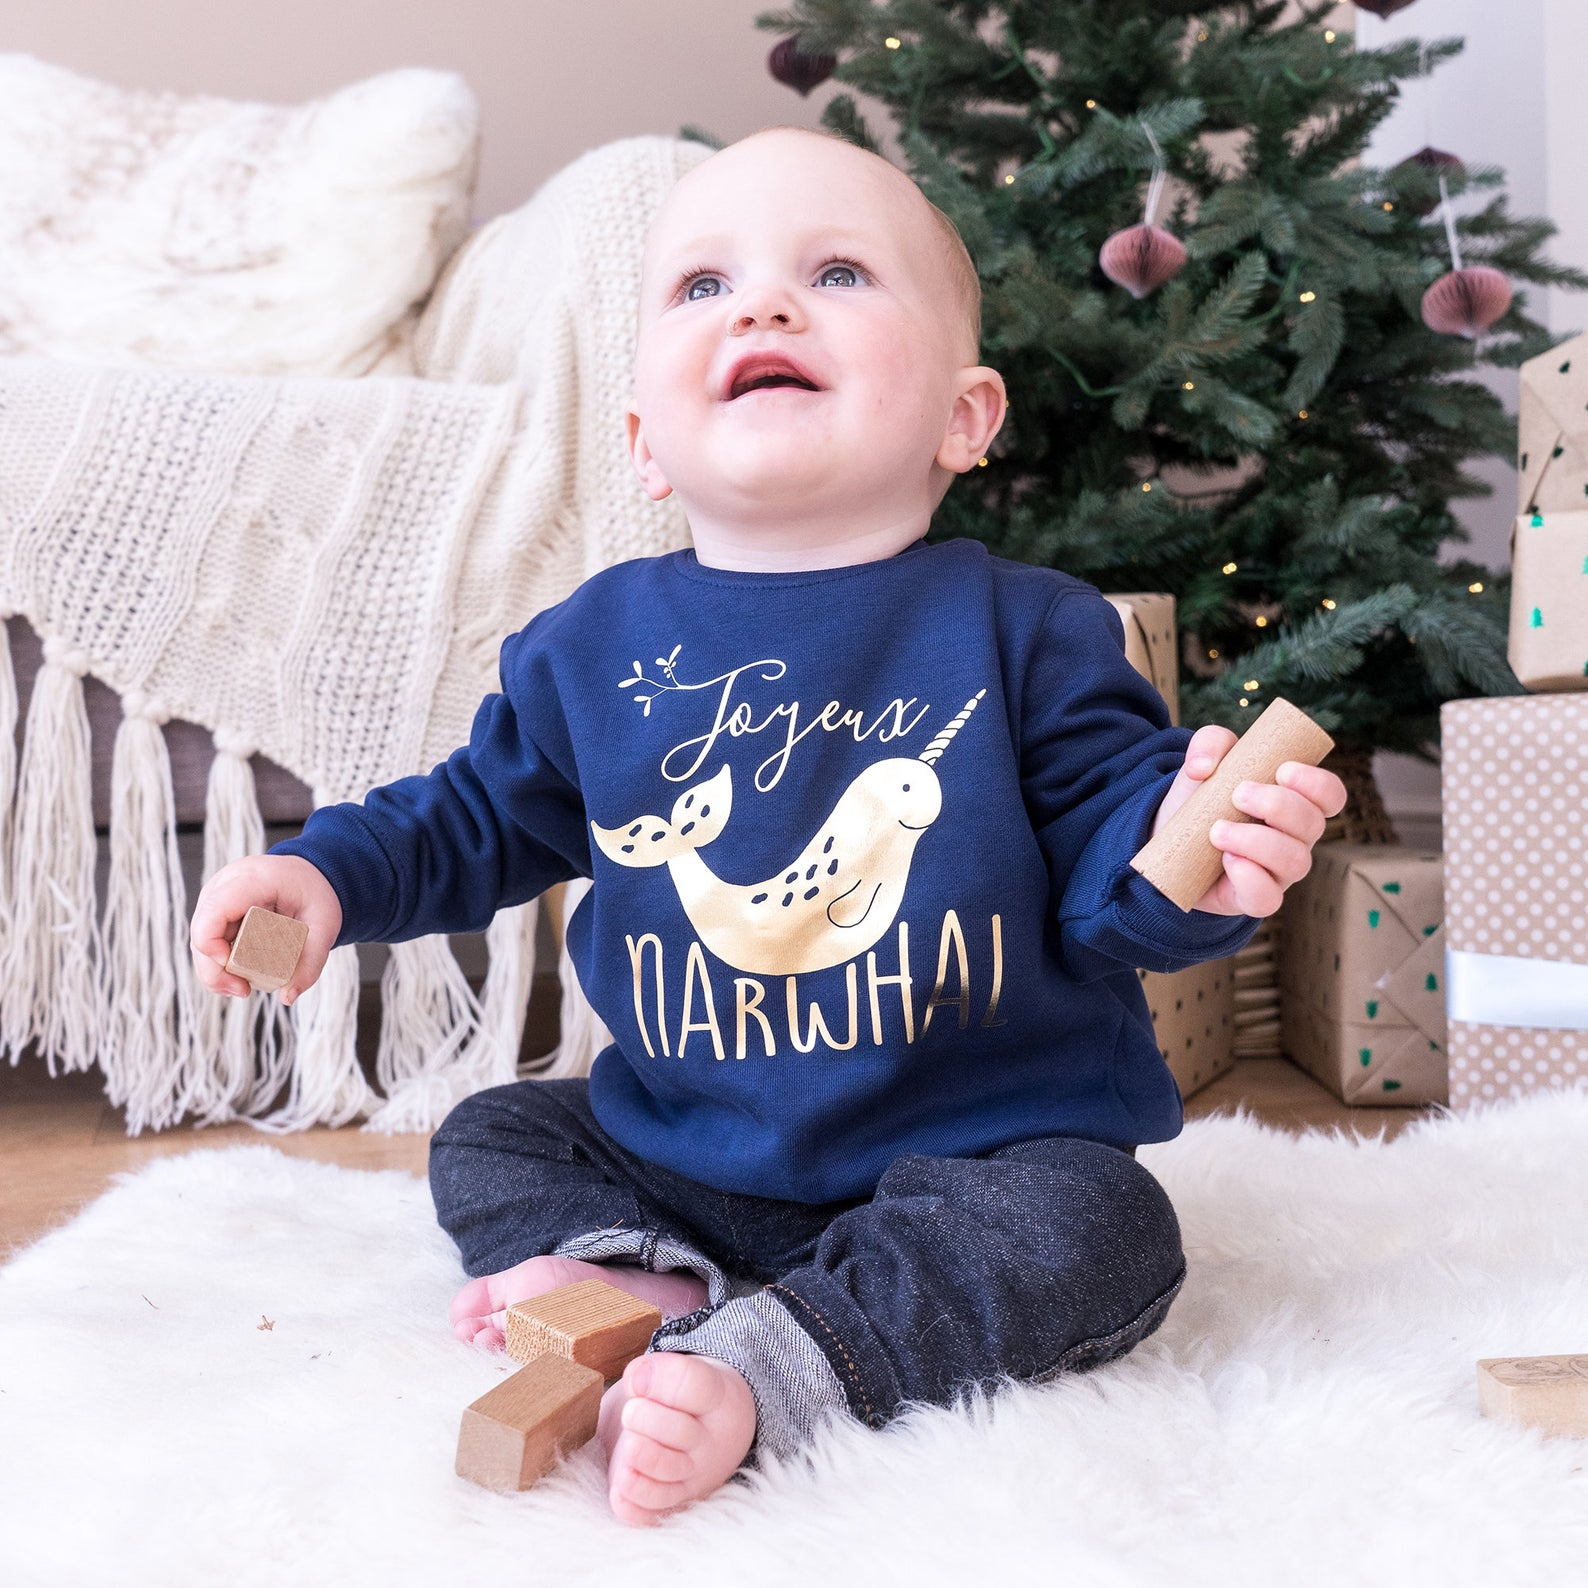 Narwhal Christmas Jumper By Sparks and Daughters